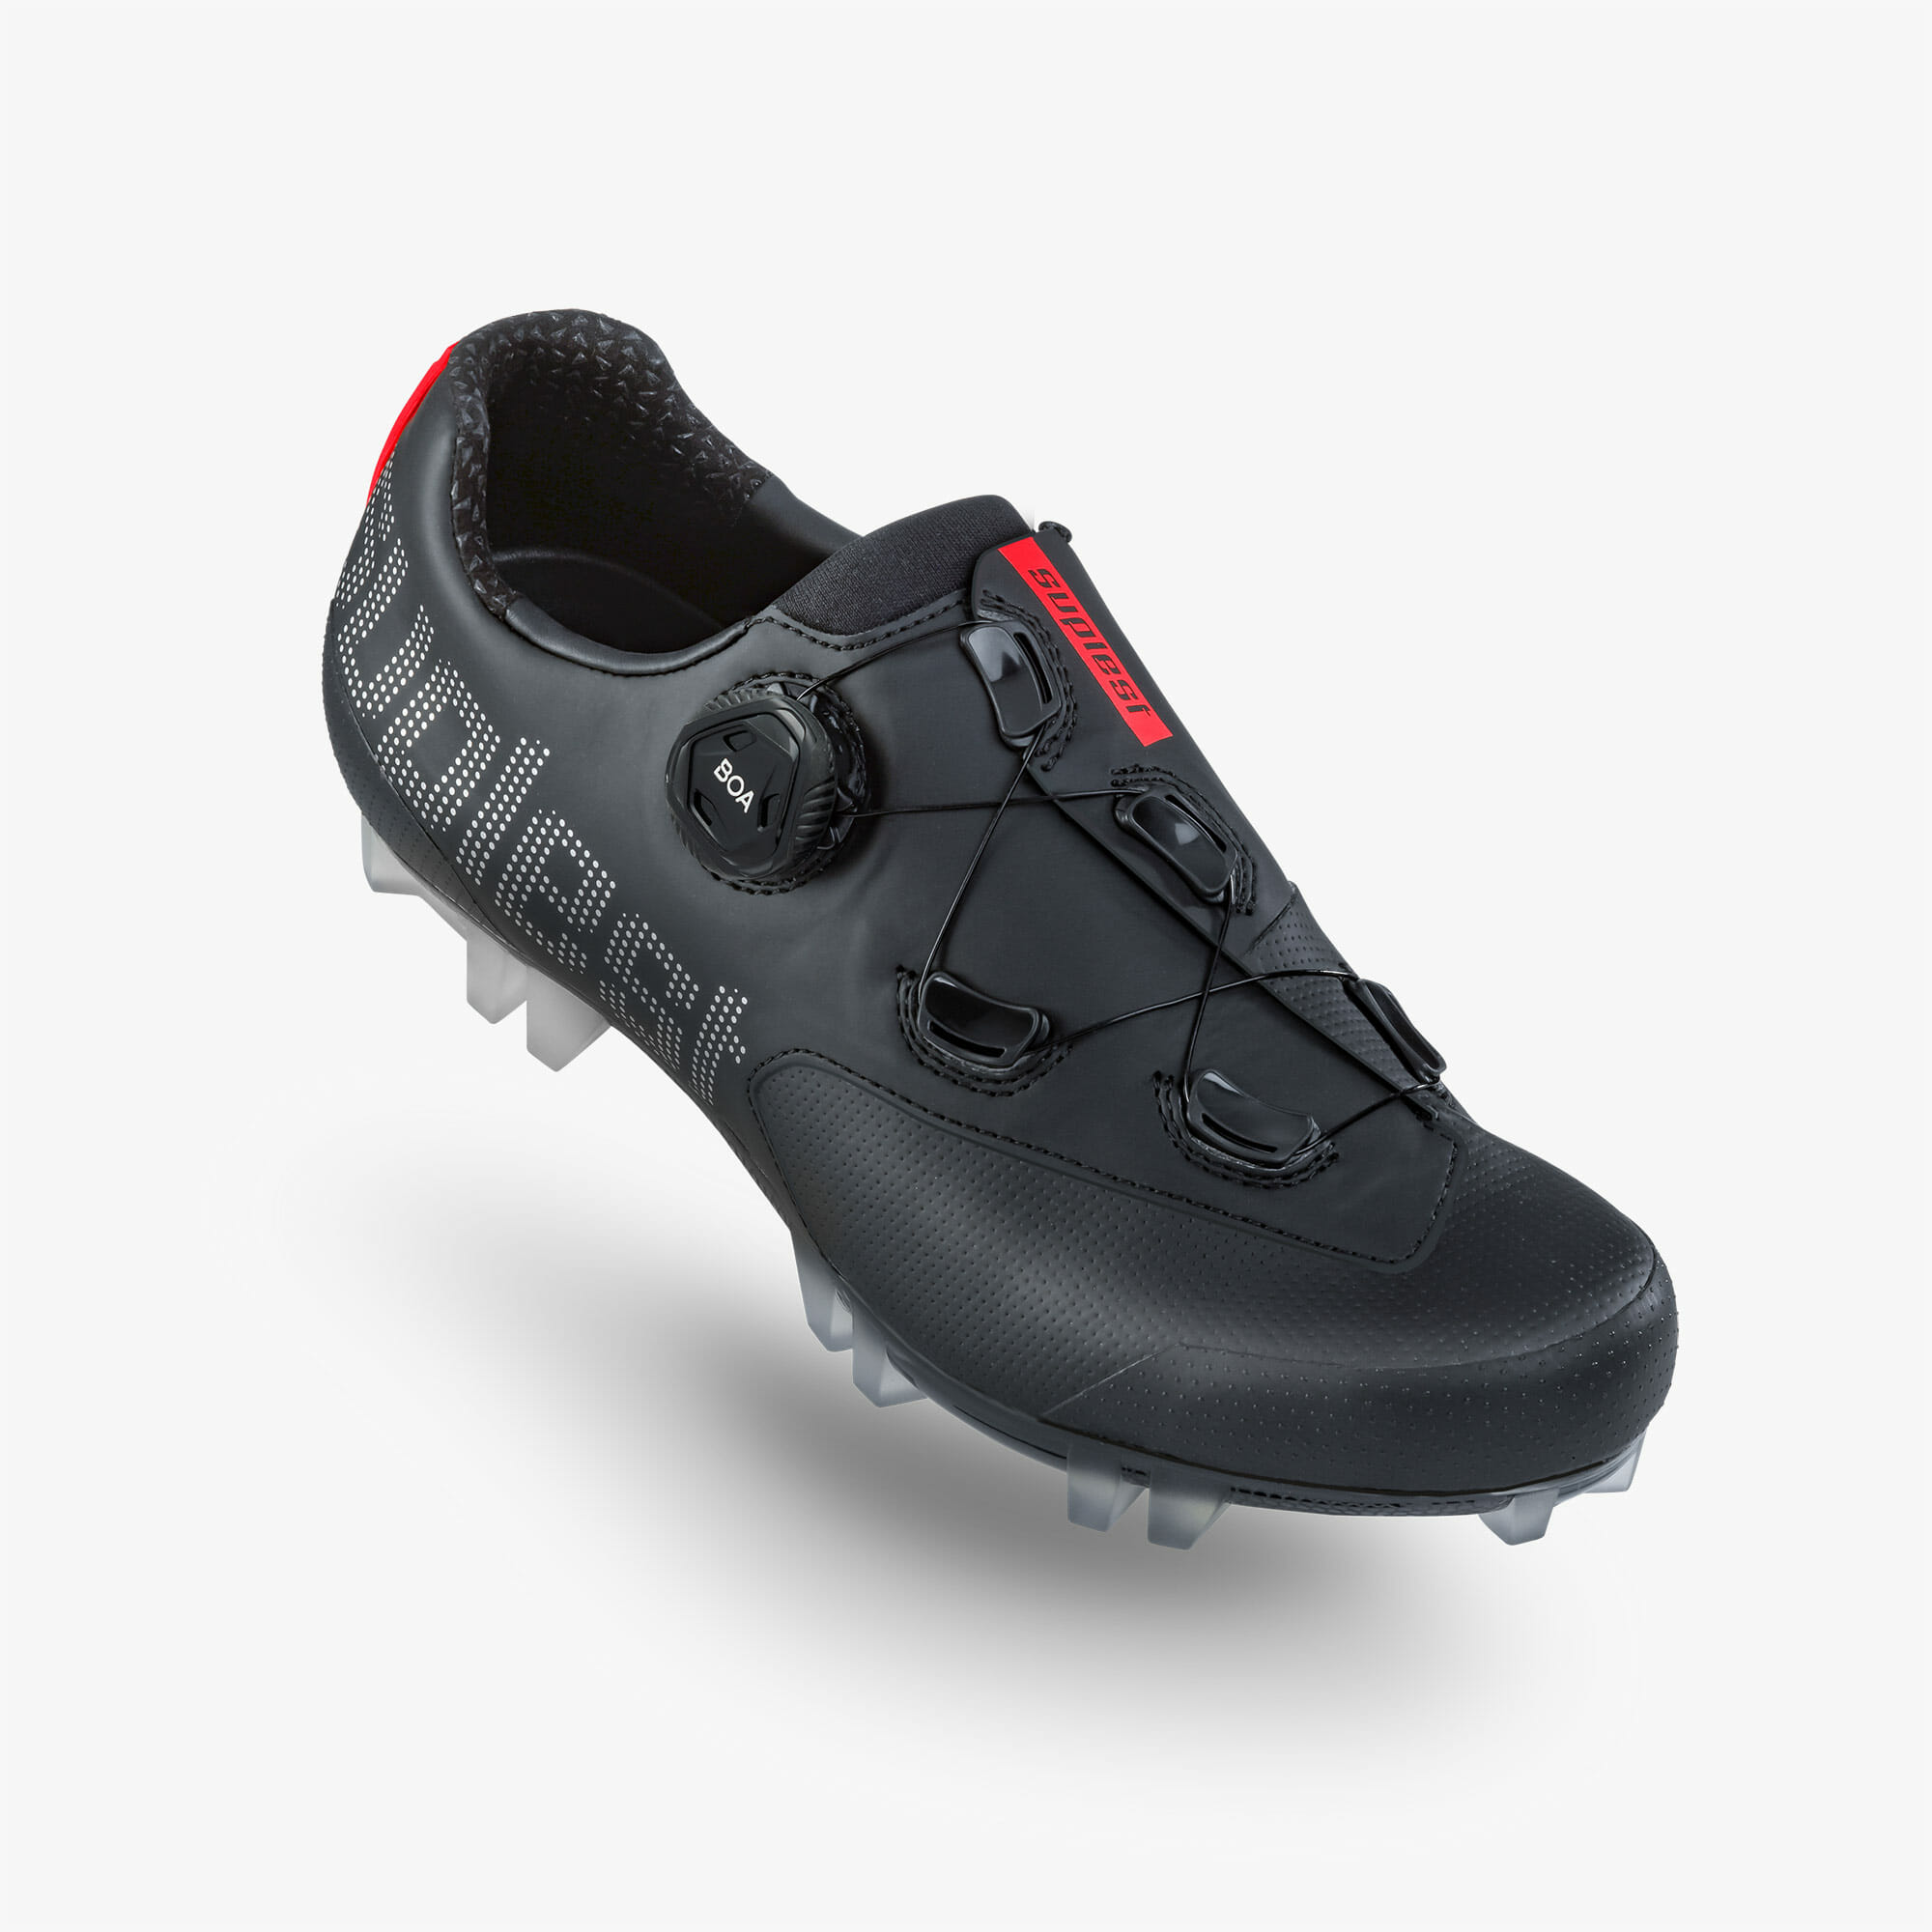 Suplest Crosscountry Sport Shoes Black Eat Sleep Cycle